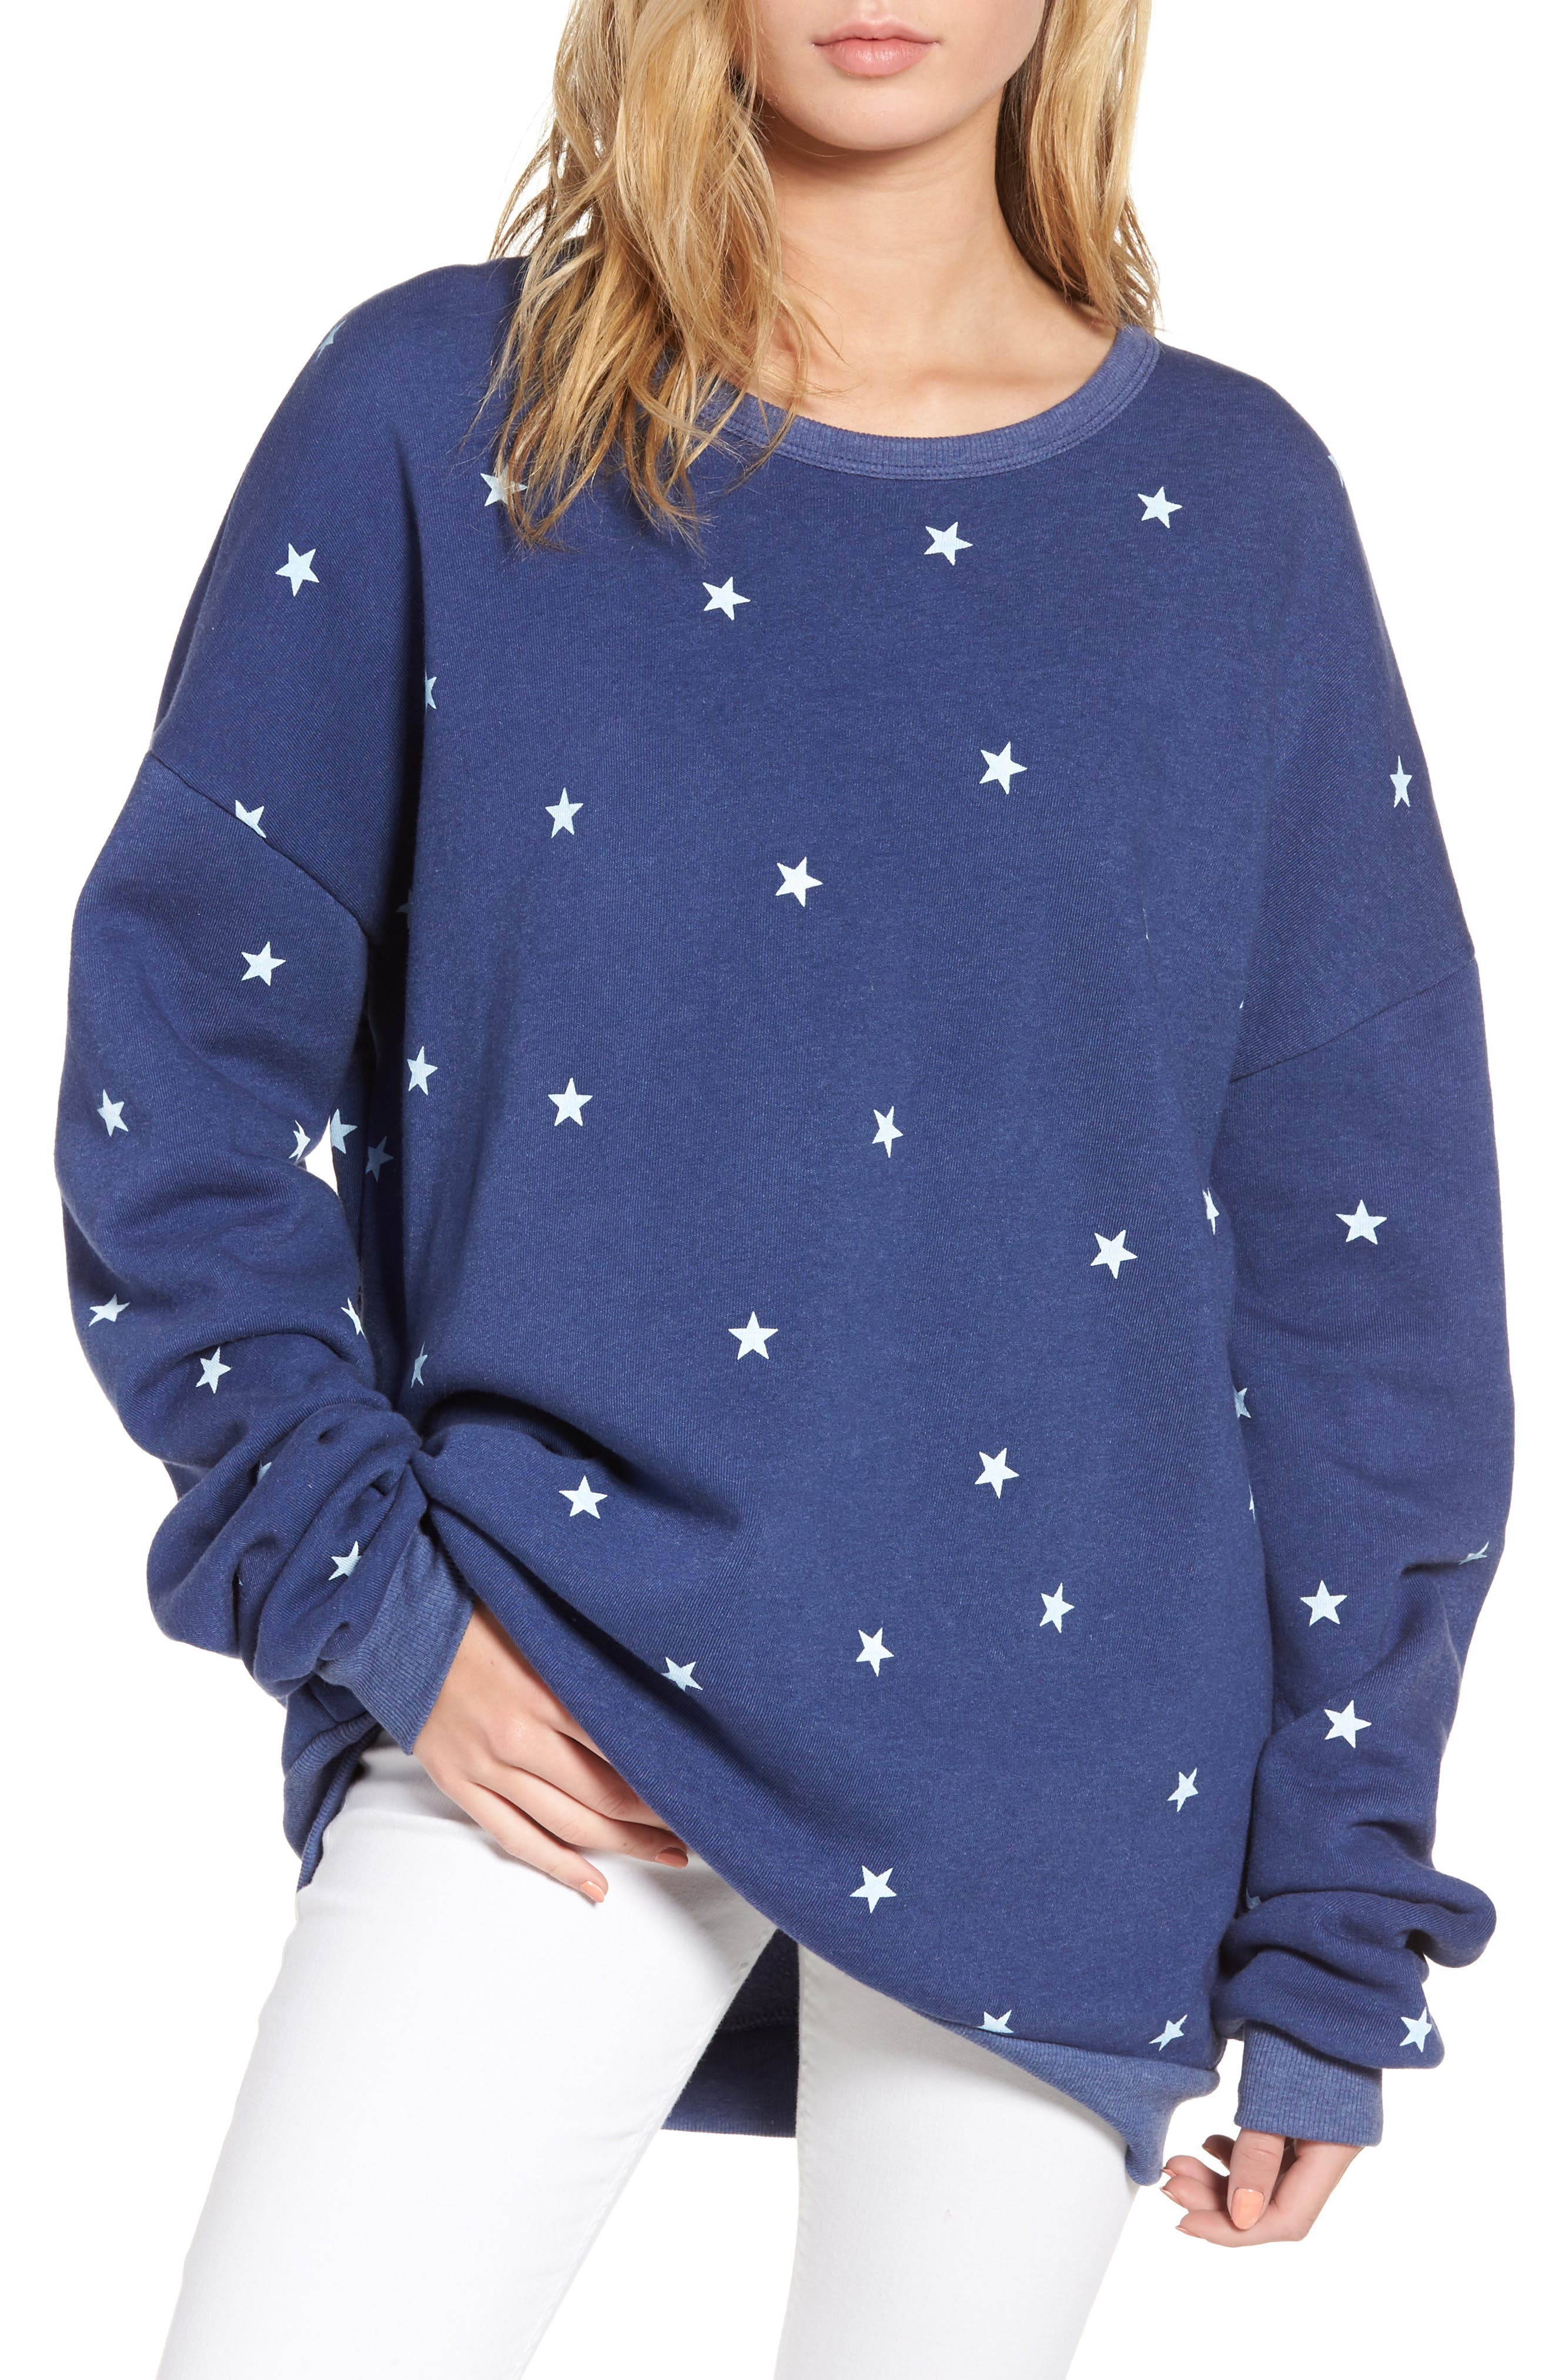 Alternate Image 1 Selected - Wildfox Star Tunic Sweatshirt